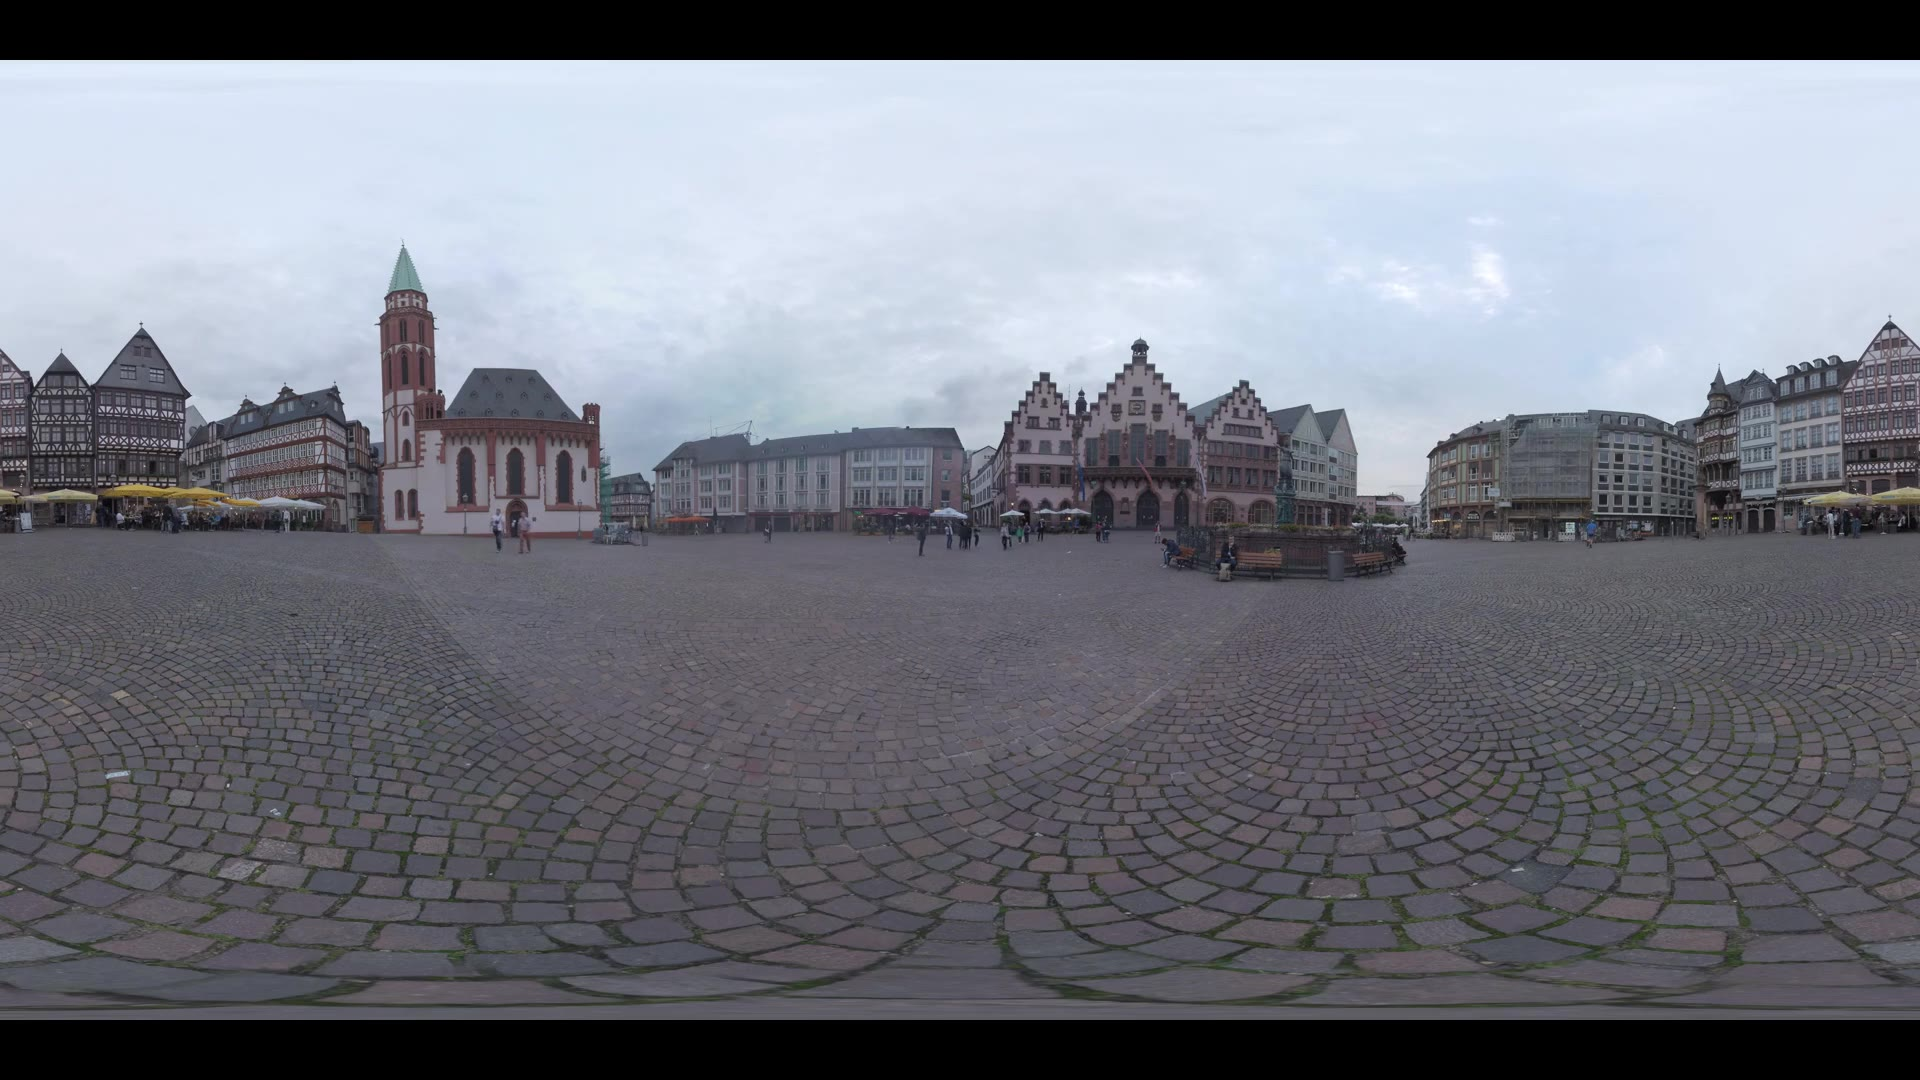 FRANKFURT AM MAIN, GERMANY - JUNE 17, 2016: 360 VR video. View to the popular touristic destination in Old Town with medieval building Romer, St. Nicholas Church and half-timbered houses